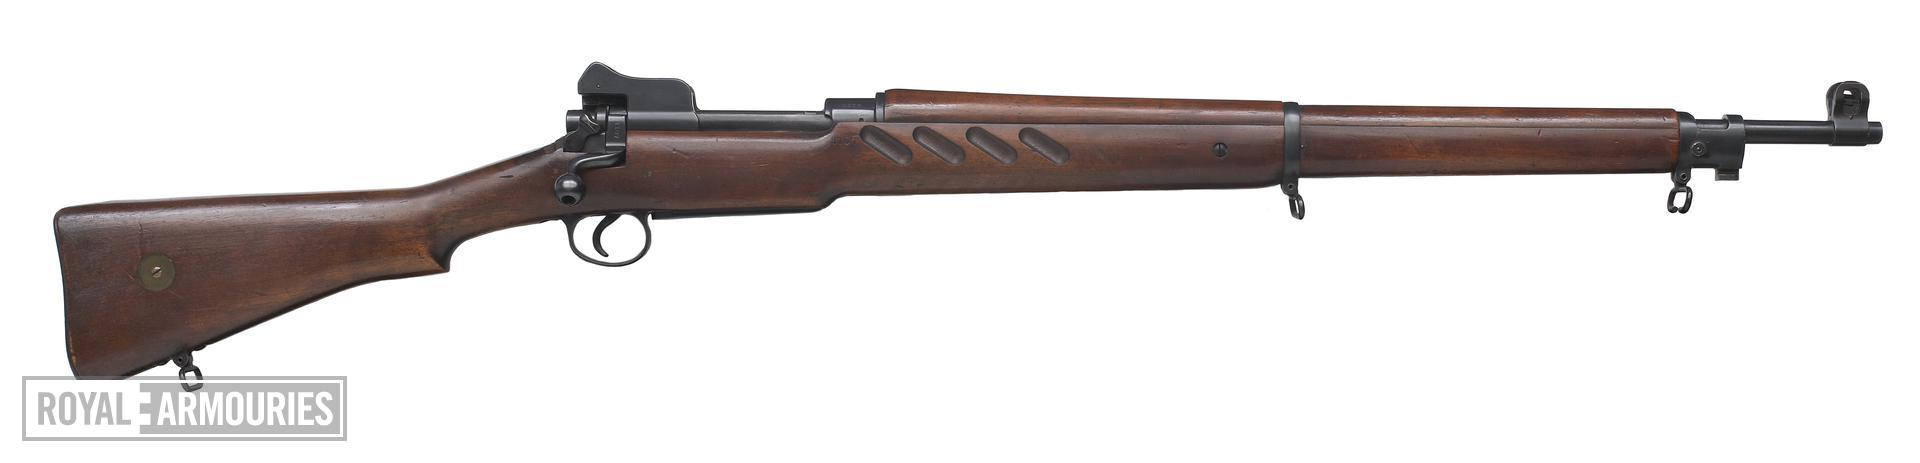 Bolt action military rifle, Enfield Pattern 1913 Rifle. Britain, Enfield, 1913. Experimental design, one of only 1251 examples, not including the 6 Improved Model weapons.